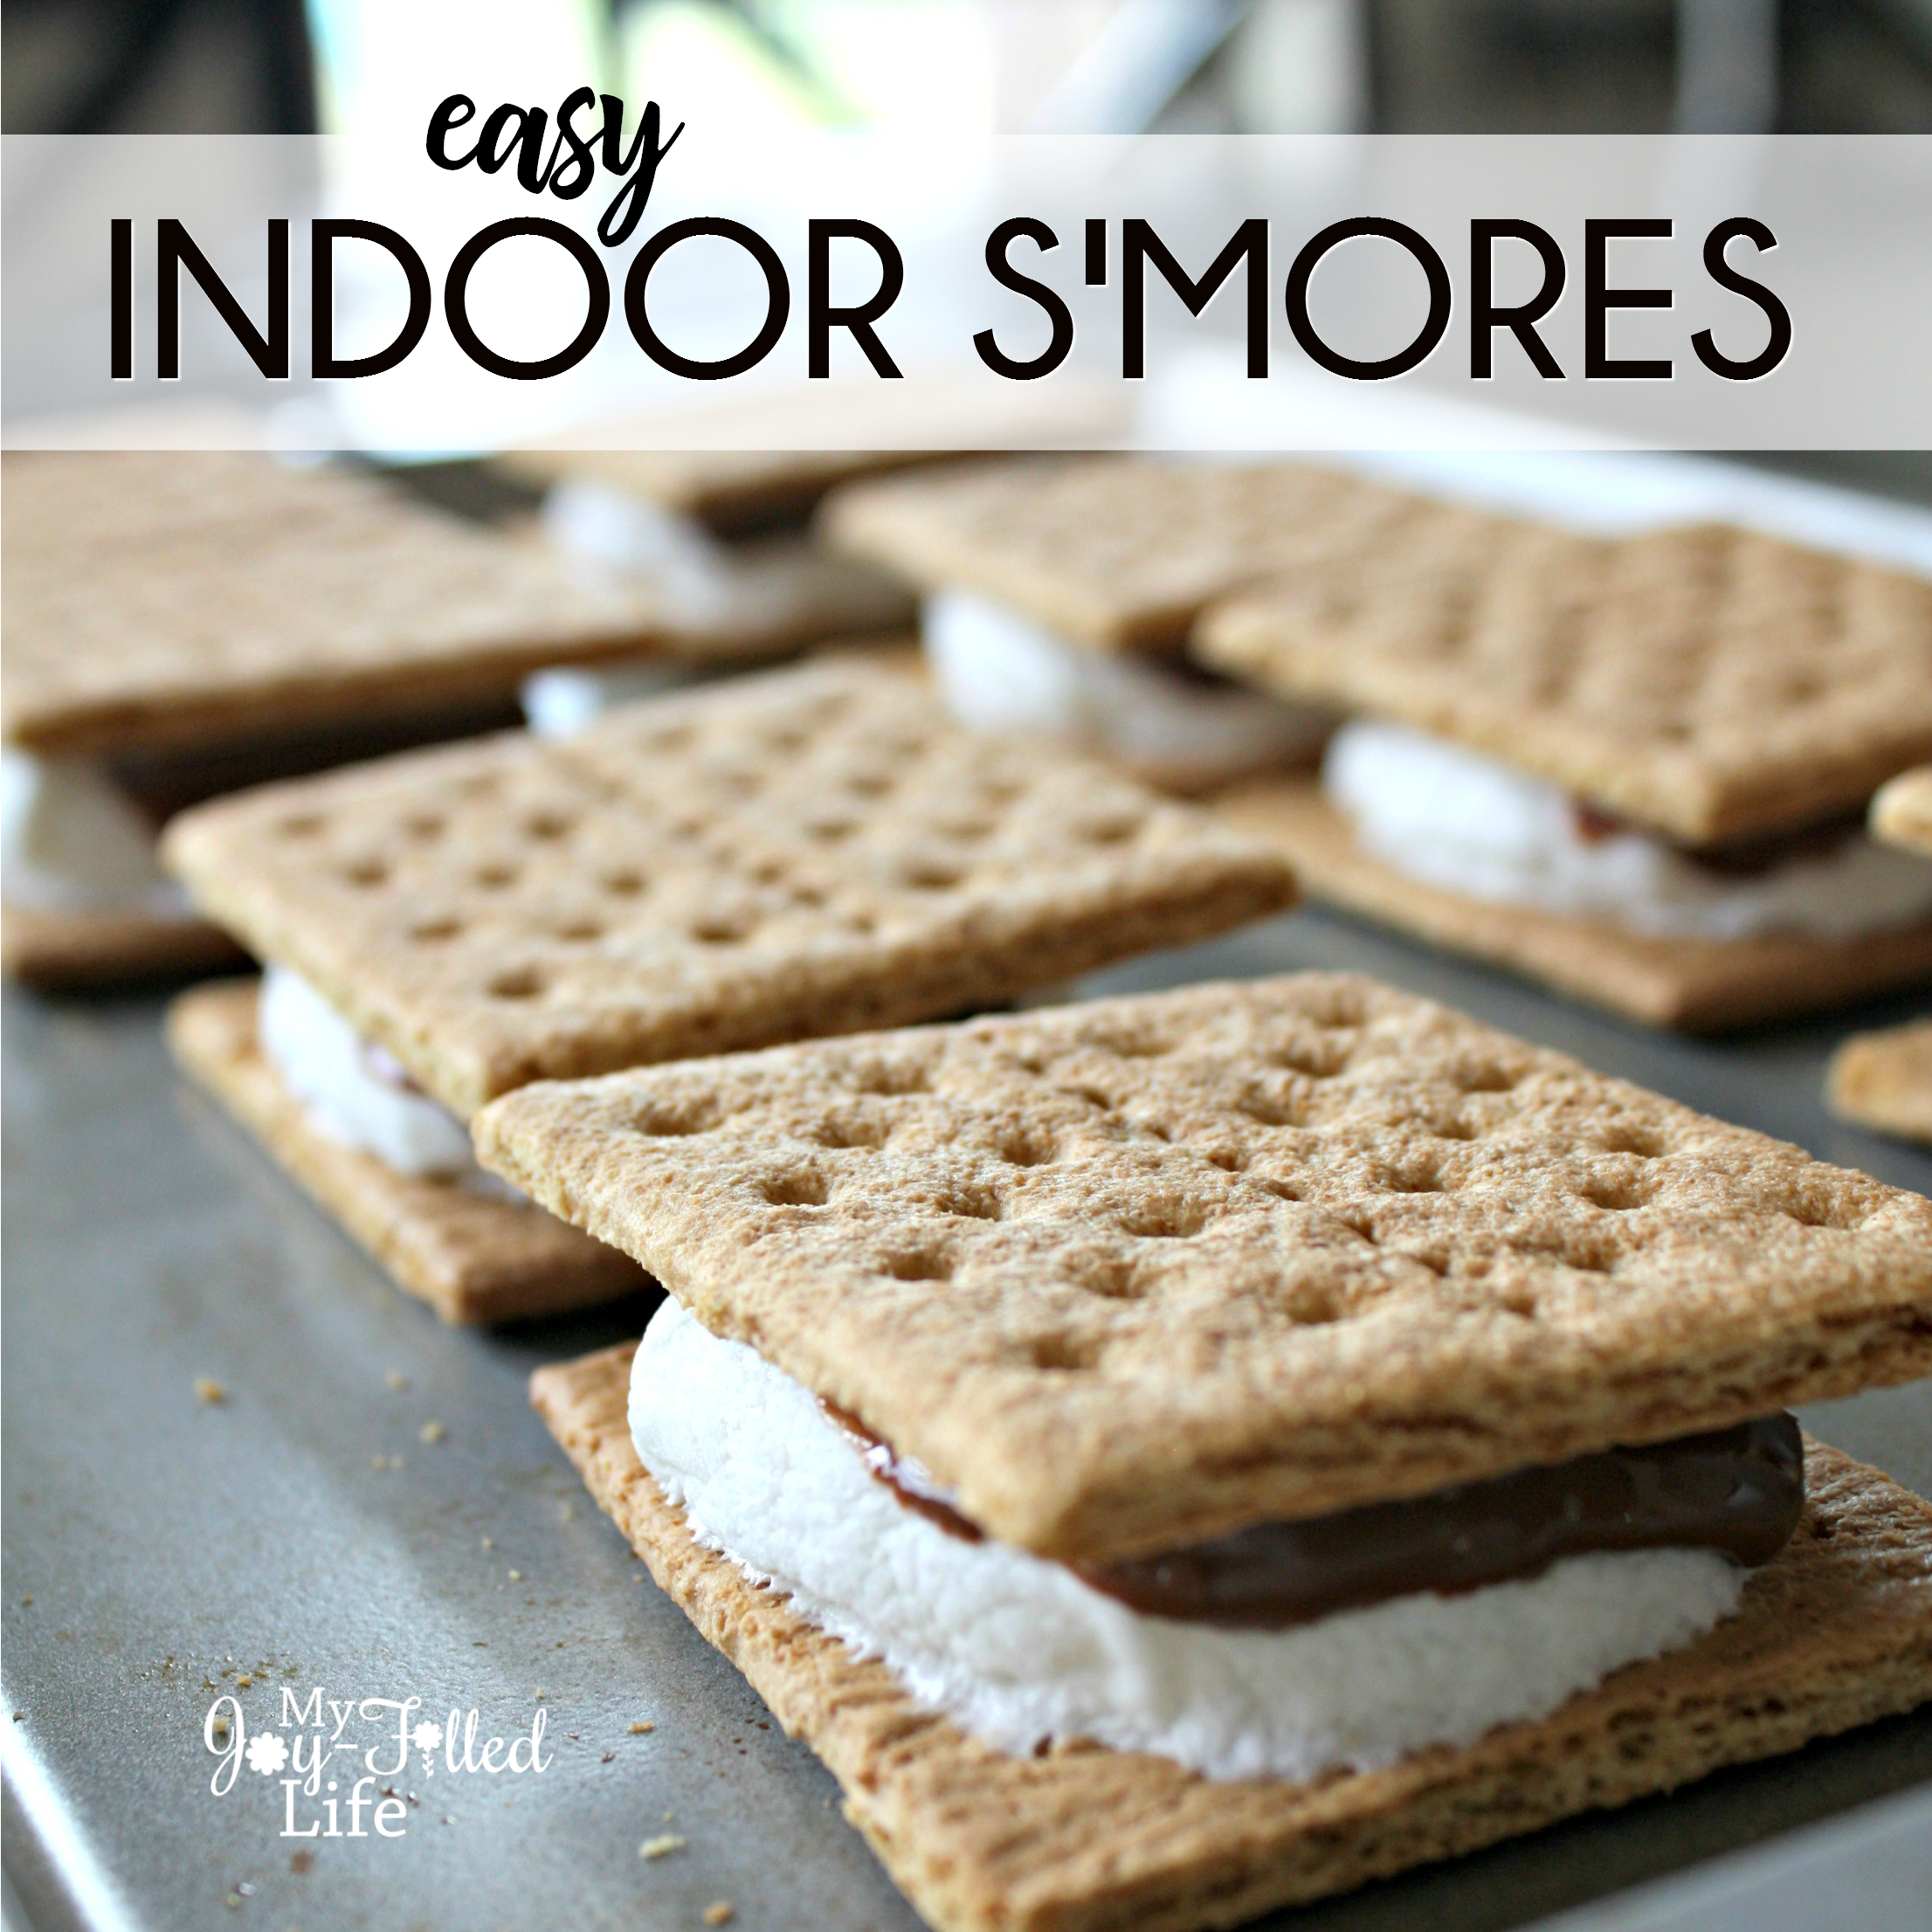 Easy Indoor S'mores